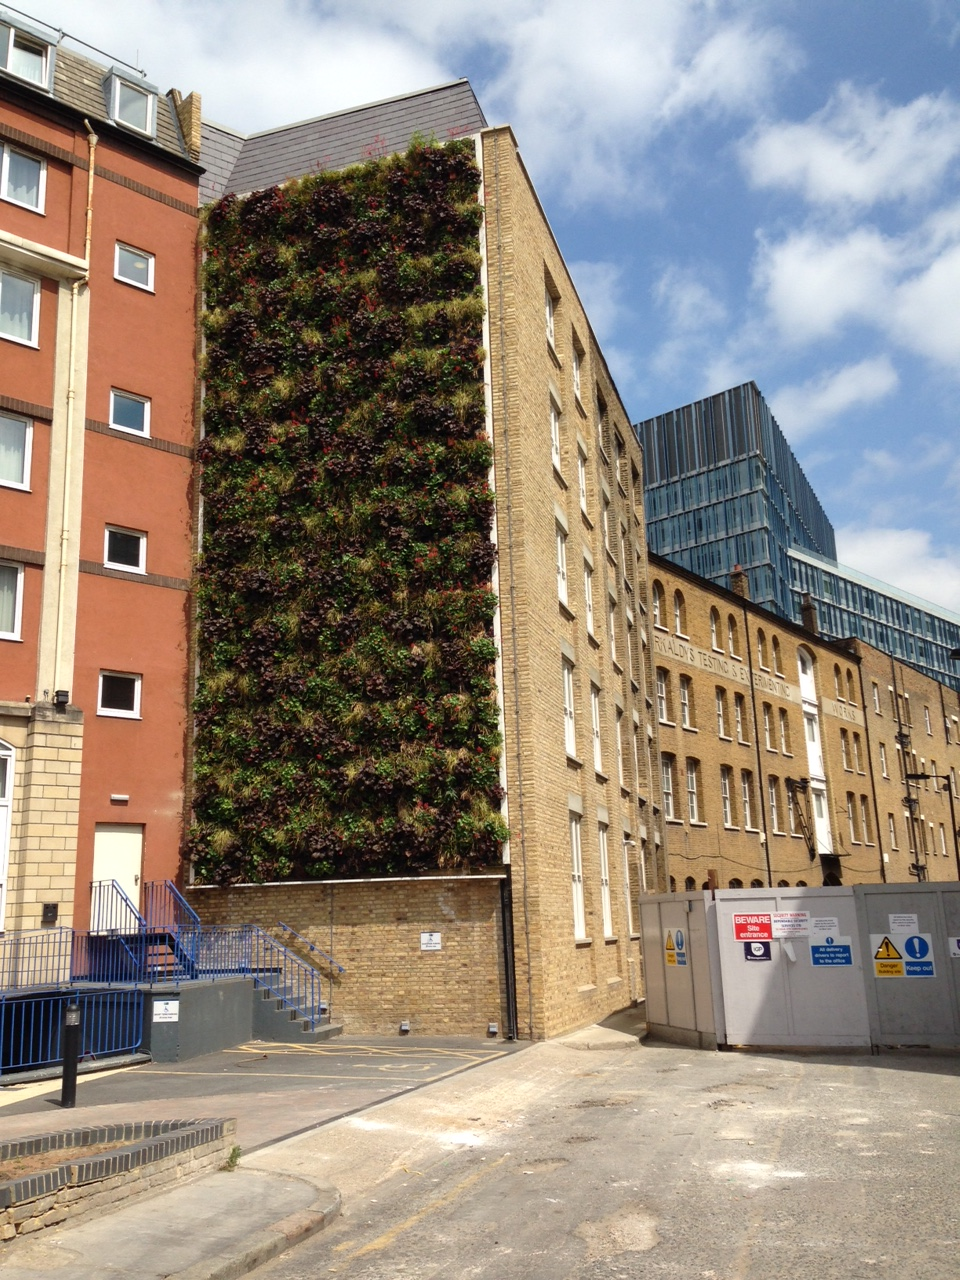 Example of a green wall on the side of an office building.